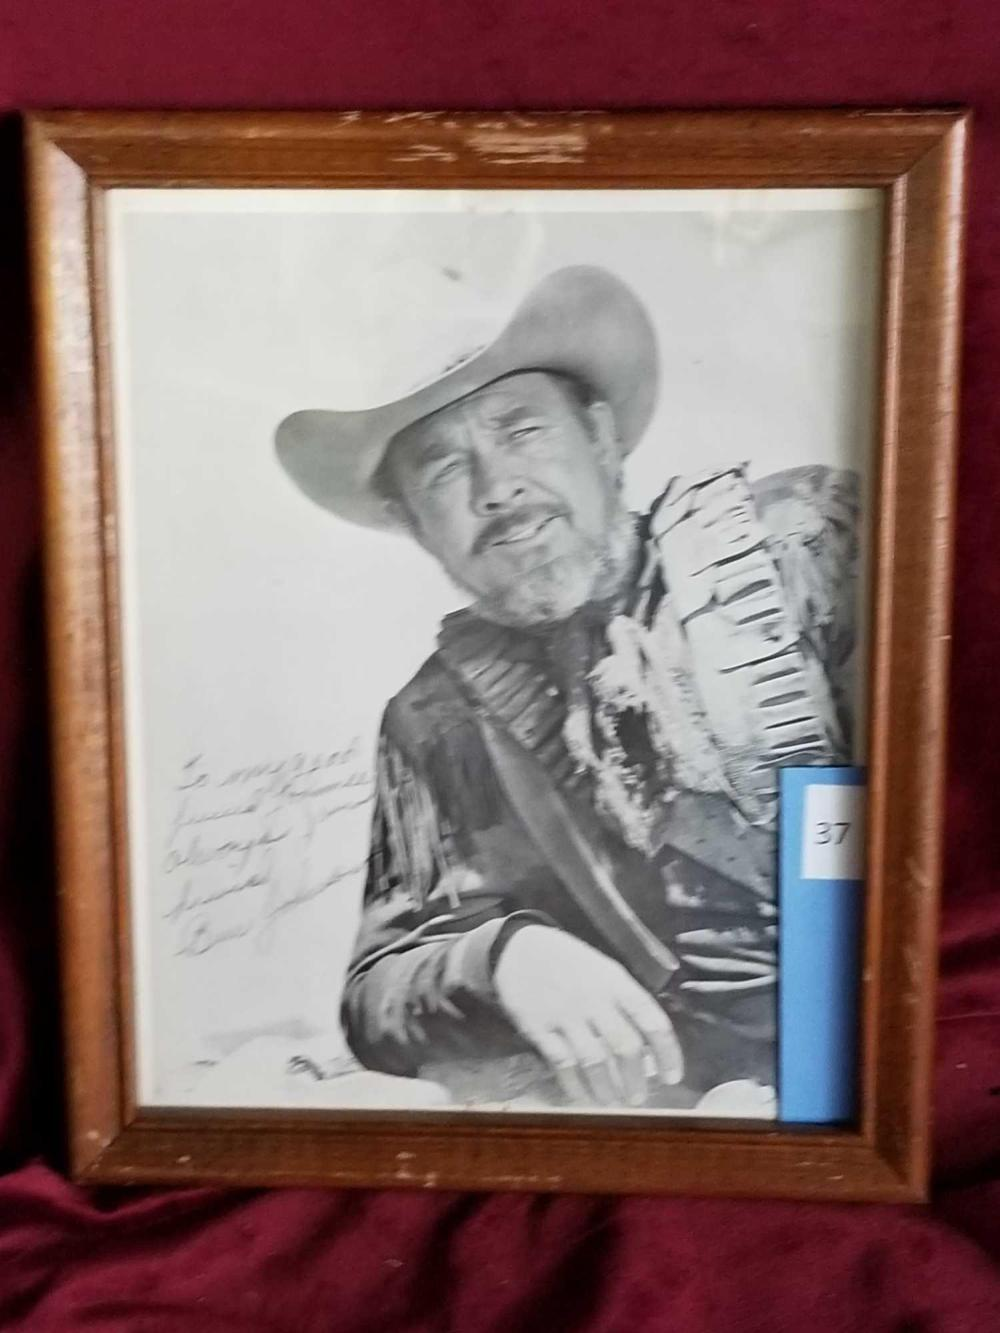 BEN JOHNSON BLACK & WHITE SIGNED WESTERN PHOTO FRAMED